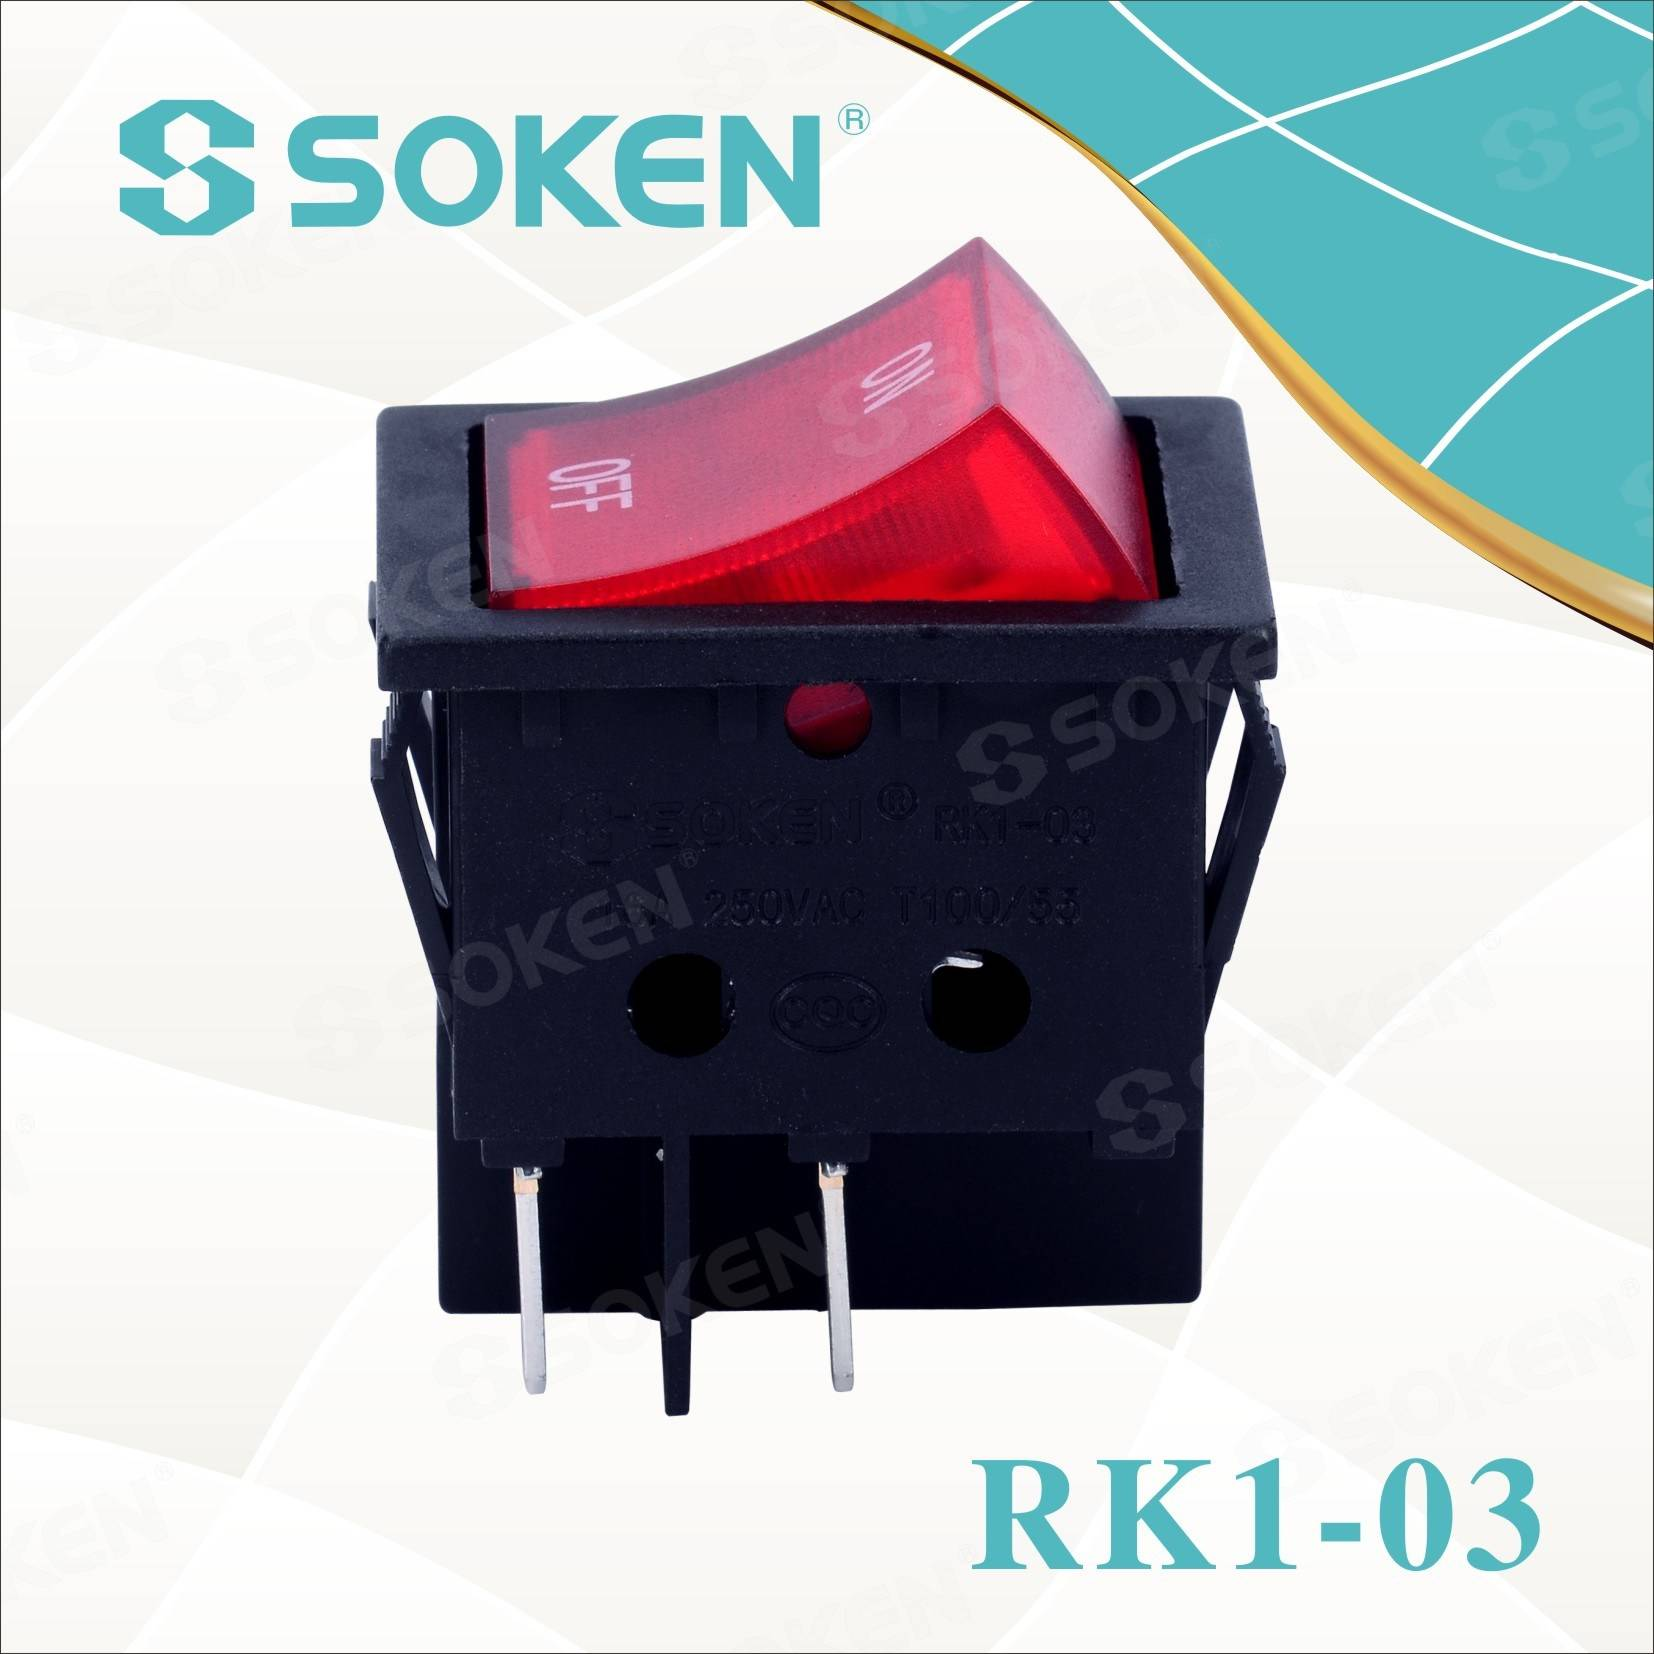 Renkontis for Rocker Switch Panel